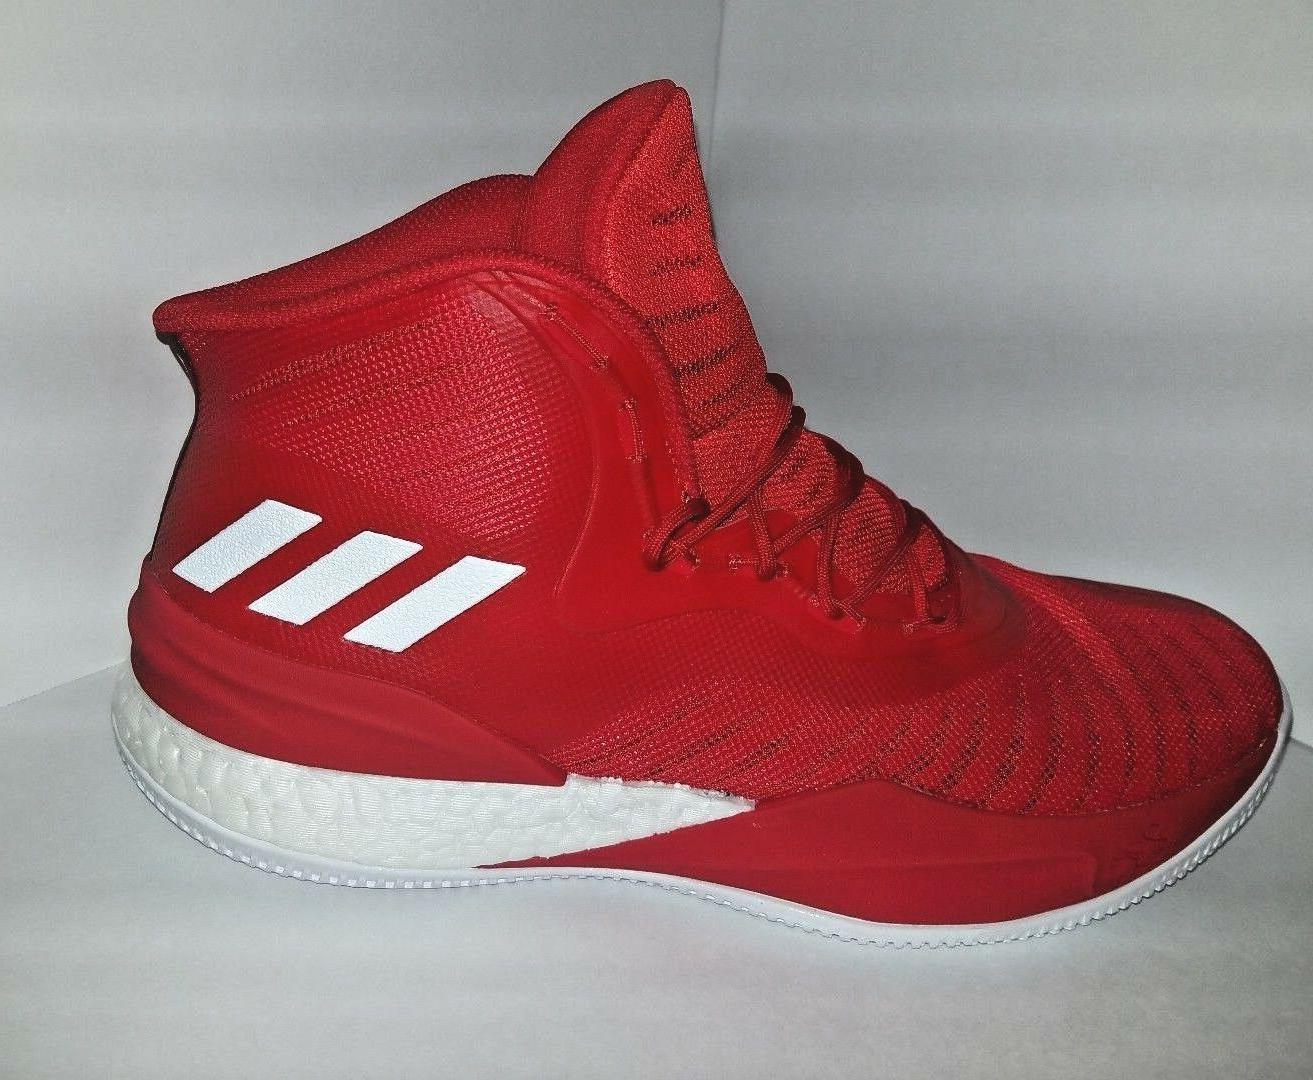 d rose 8 basketball shoes size 12